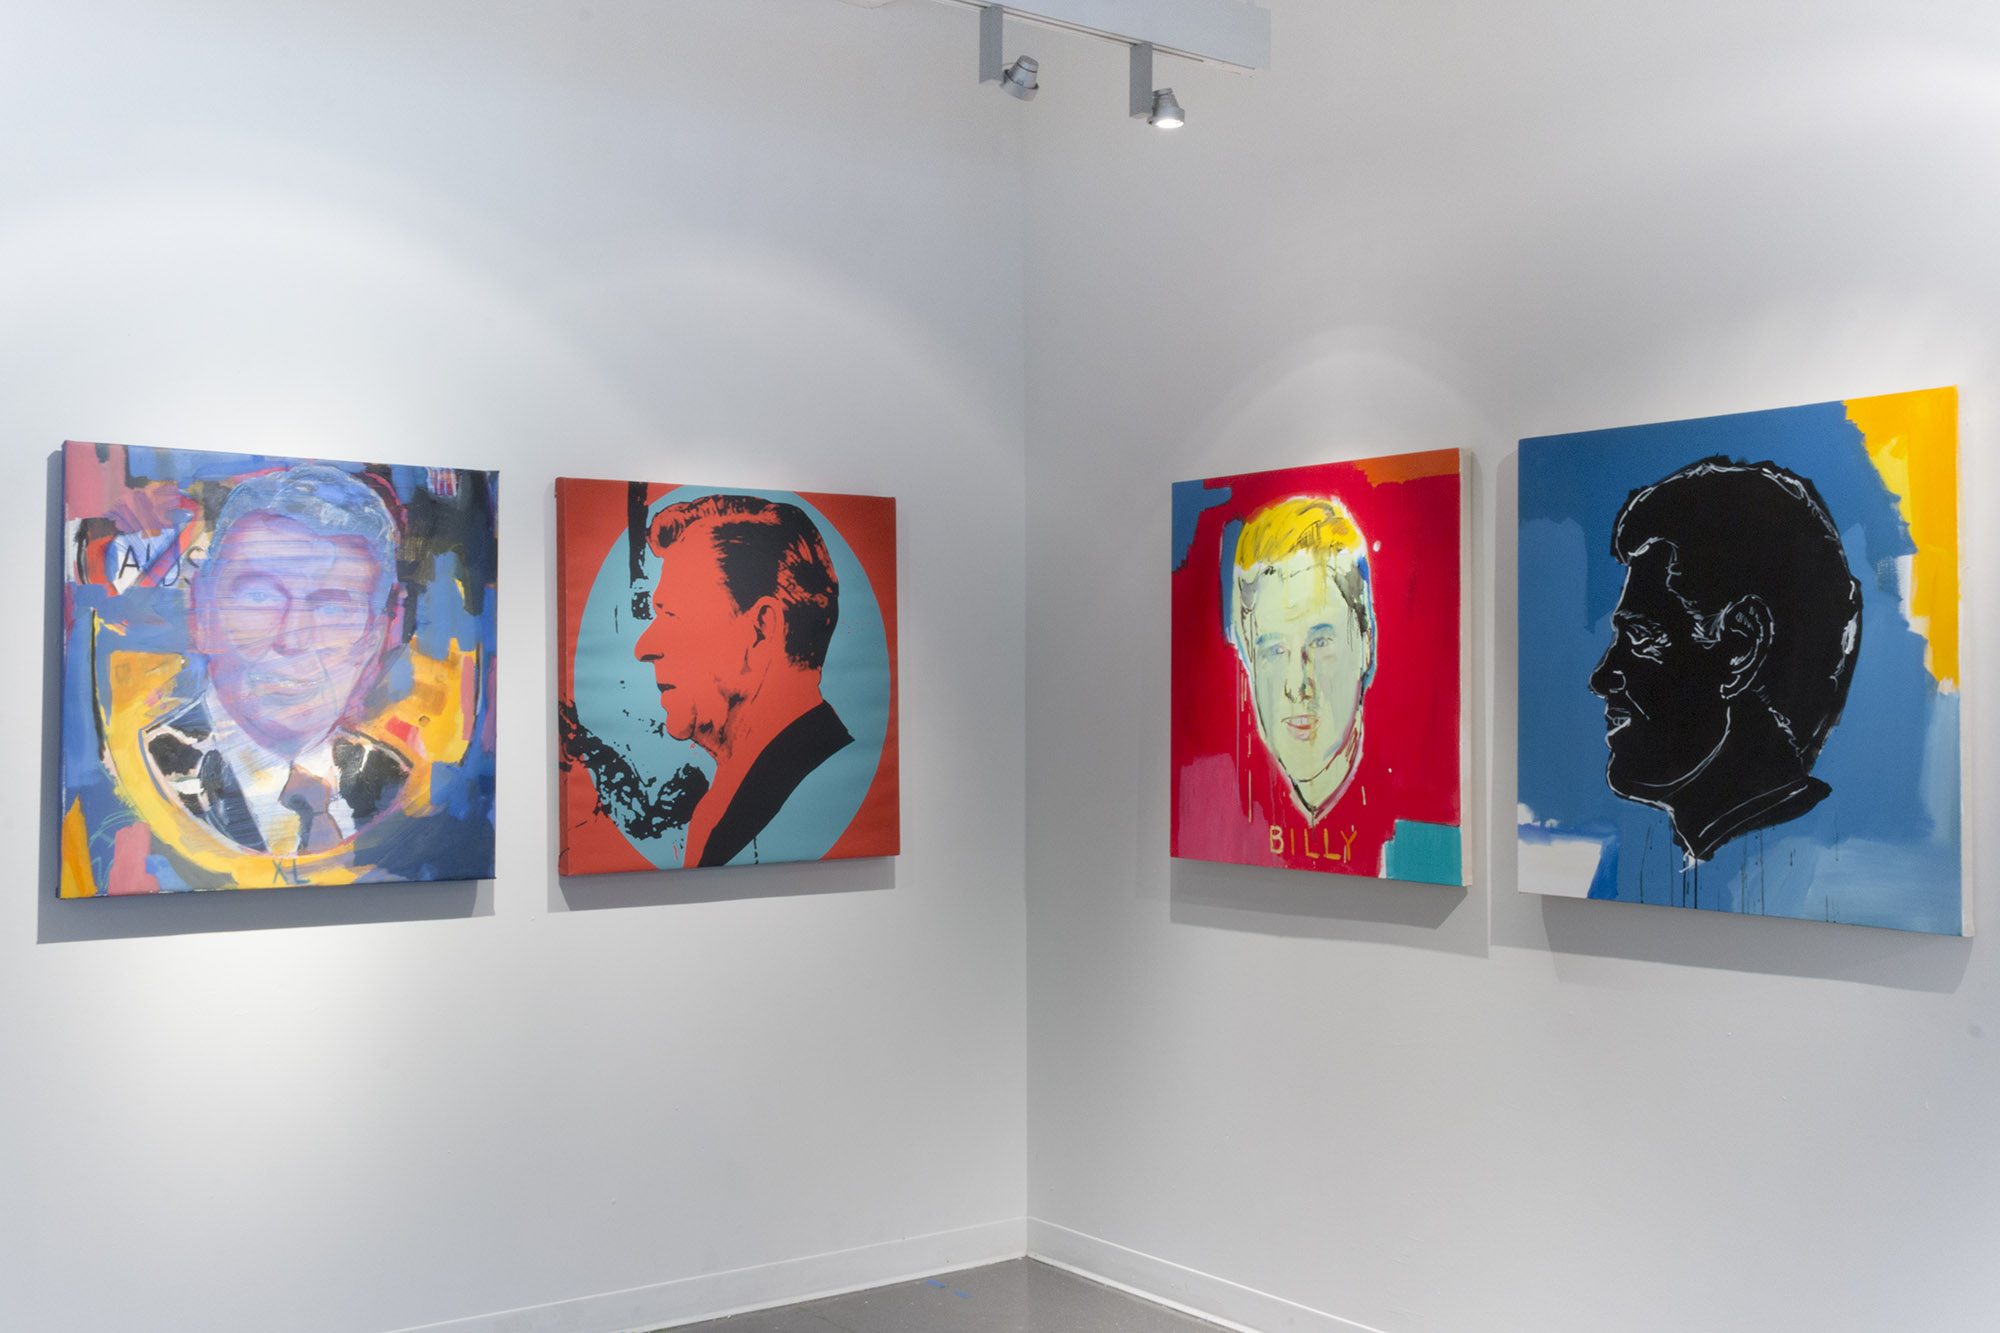 a photograph of a corner of a gallery with four paintings hanging on the wall. The paintings are square and feature a depiction of different US presidents on each painting with vibrant colors painted over them.